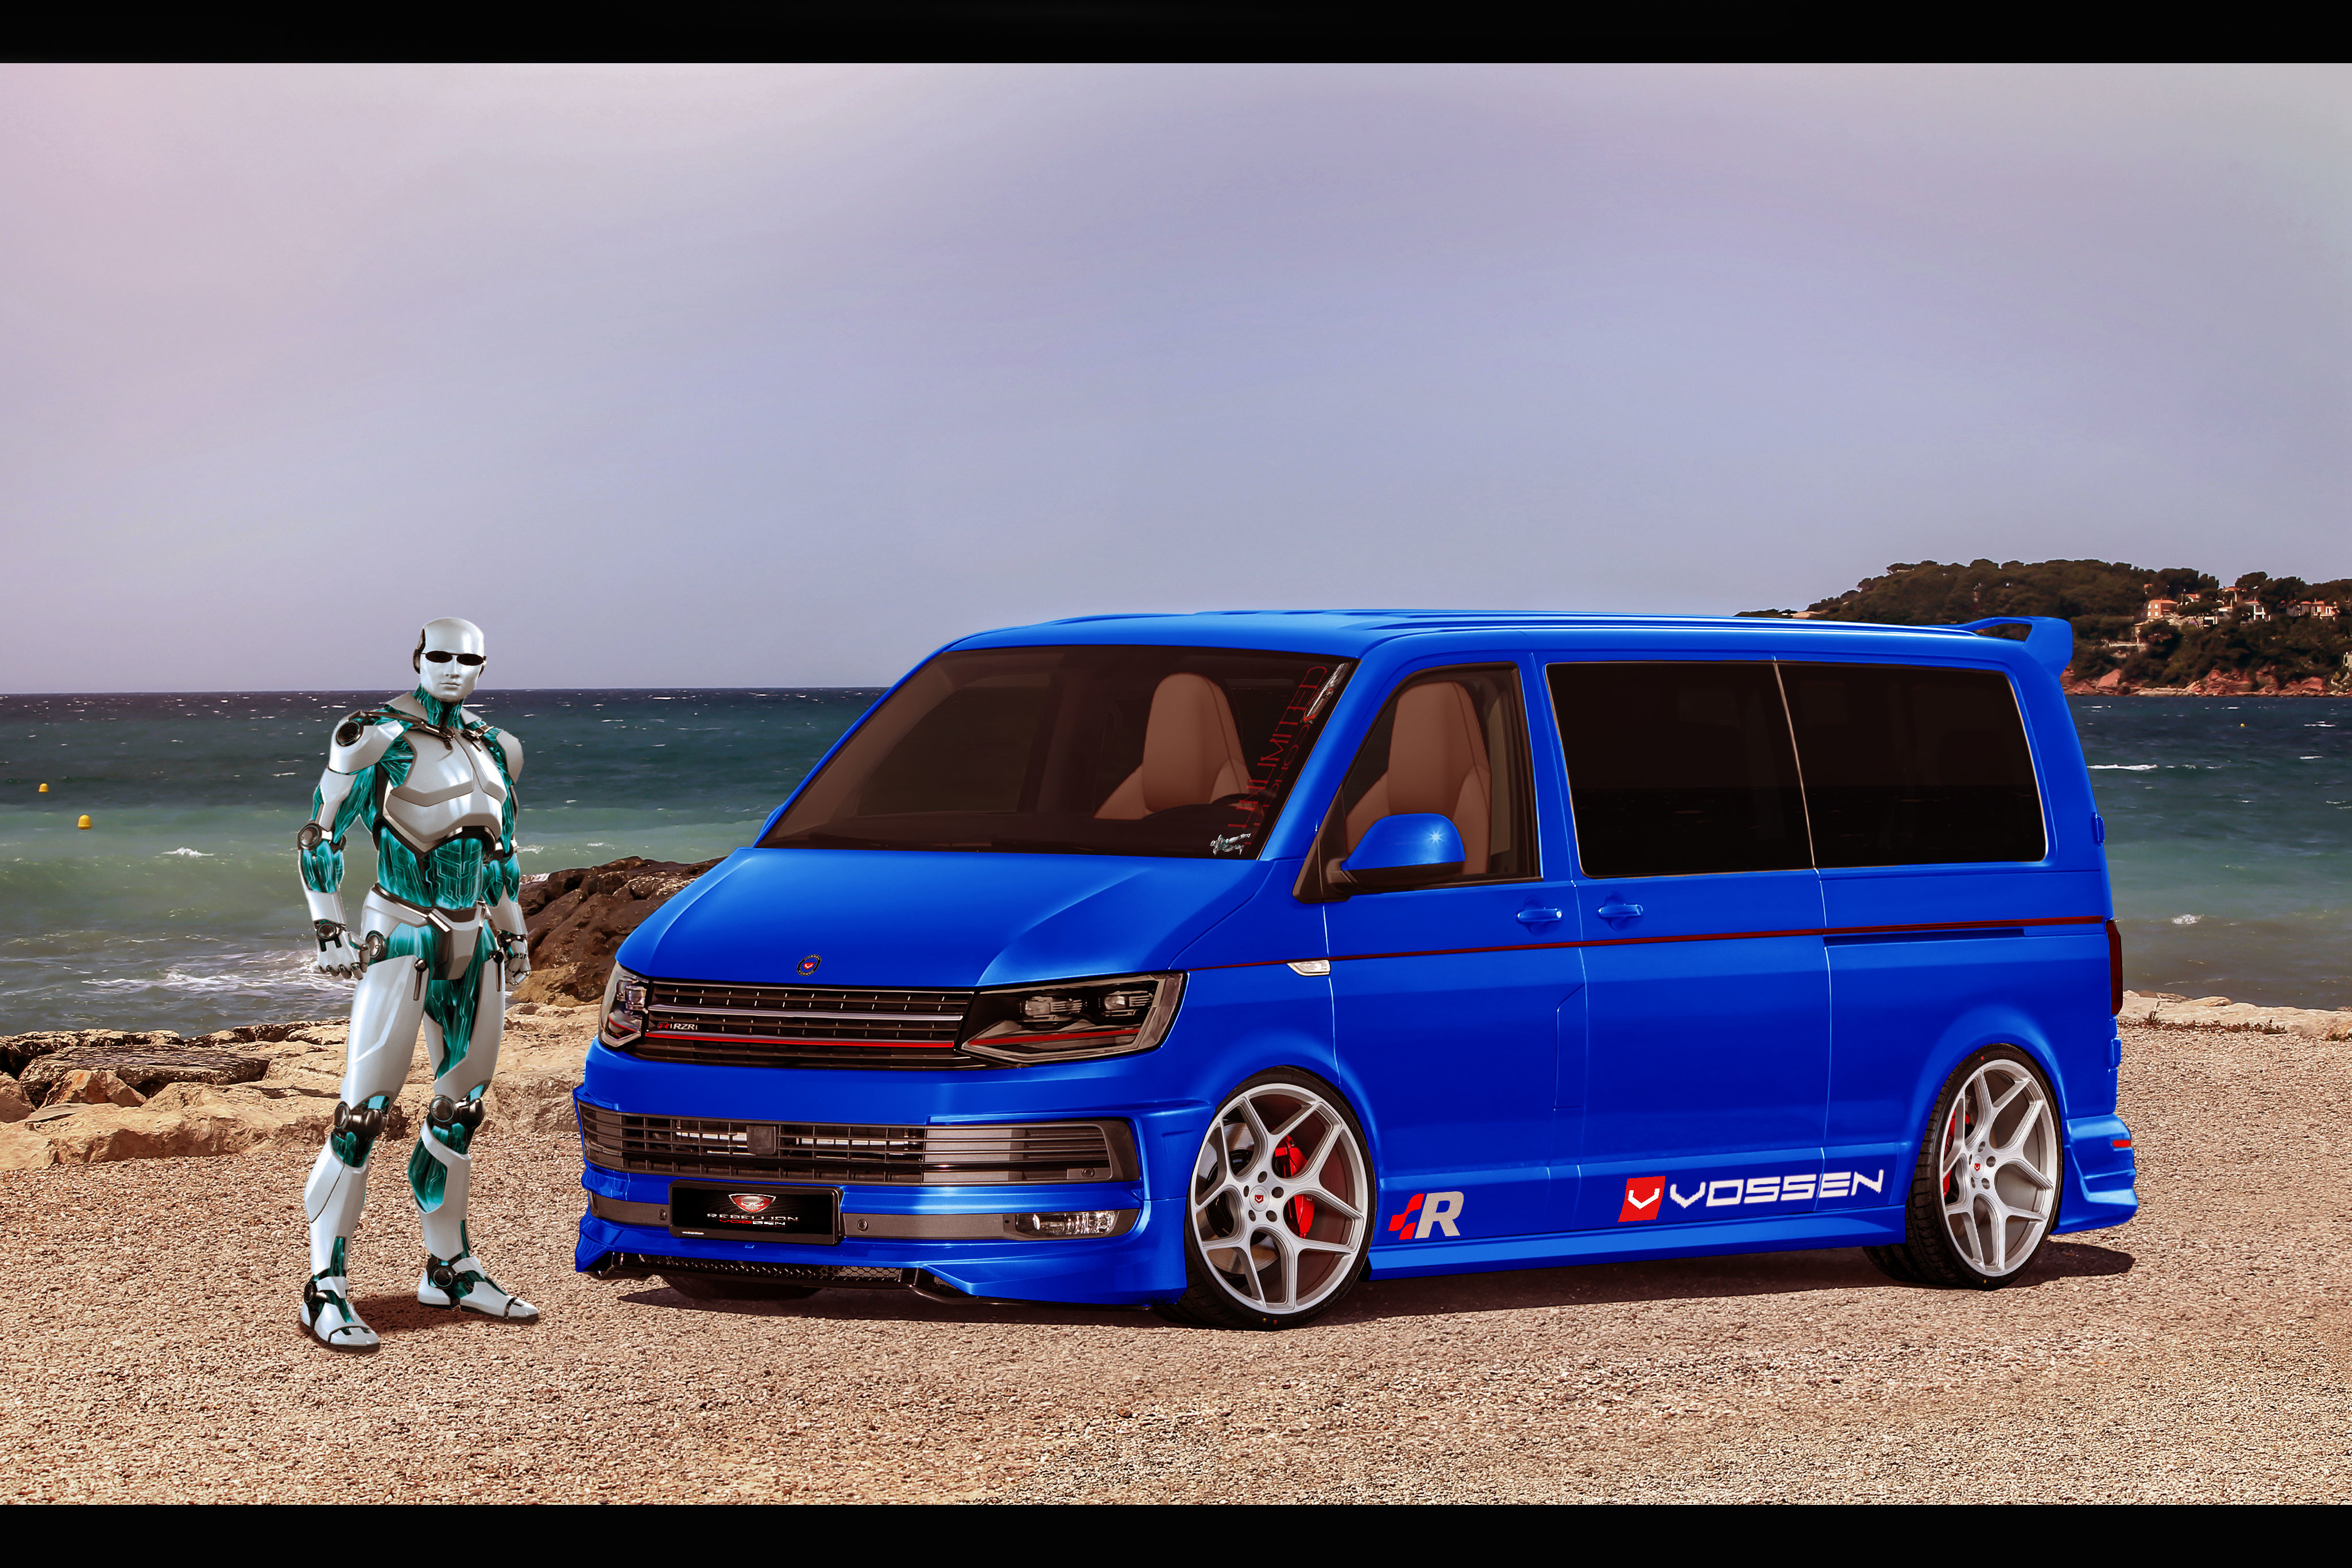 VW-T6-ABT-Supersport-RZRR